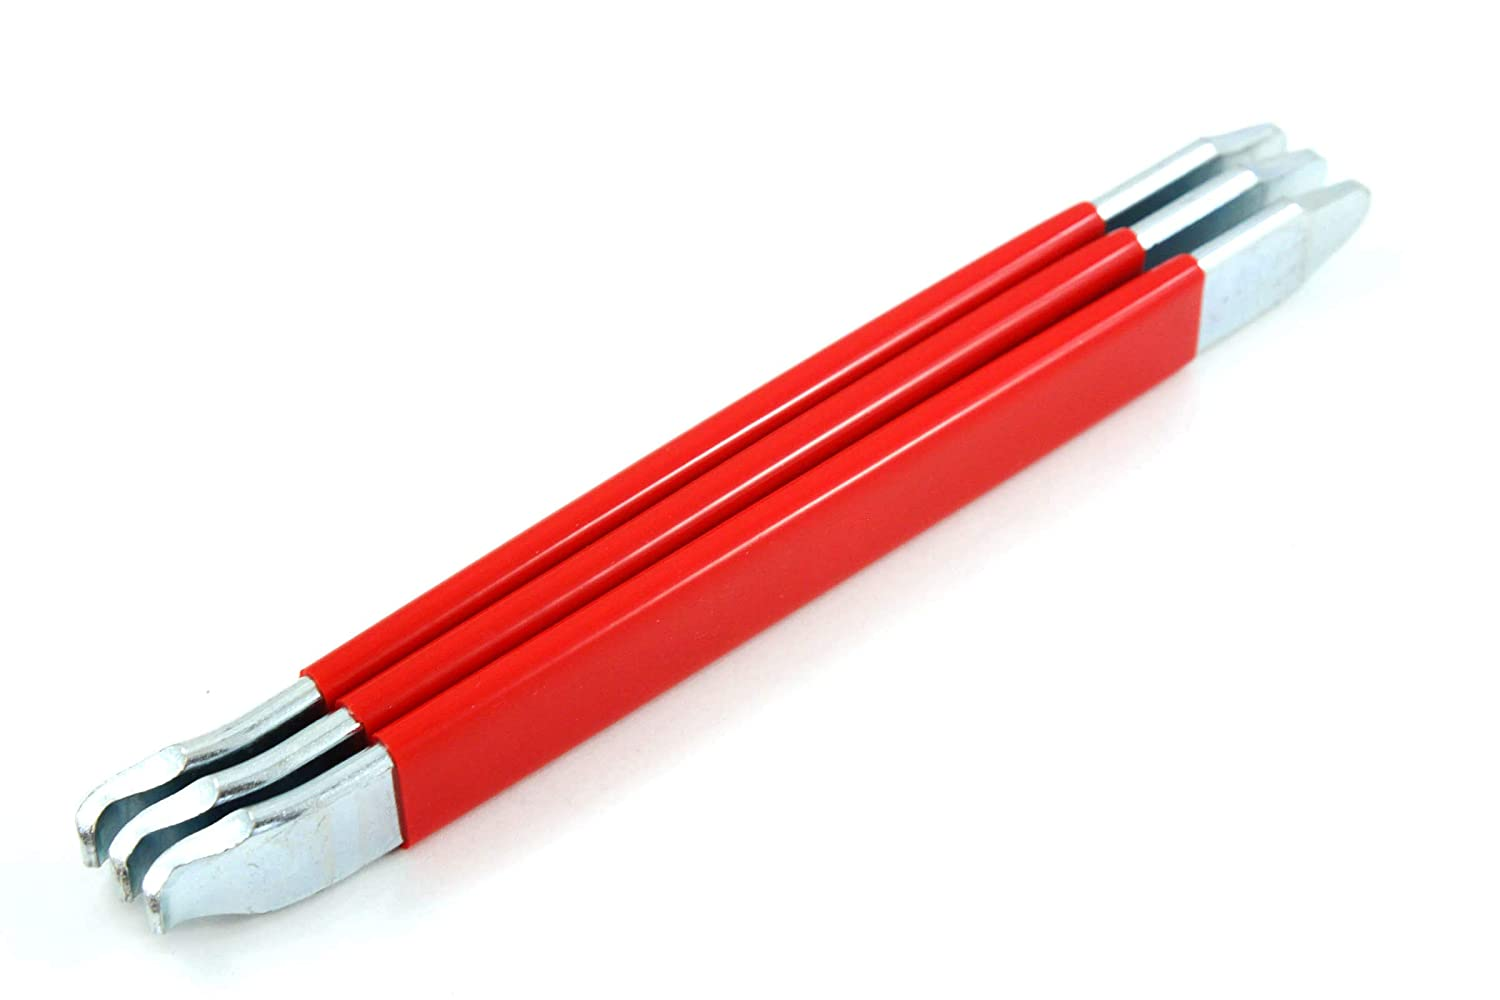 Red Hound Auto Three Pack Motorcycle Bicycle Scooter Dirt Bike Tire Spoon Iron Changing Tool 8 1//2 Heavy Steel New Pry Bar Kit